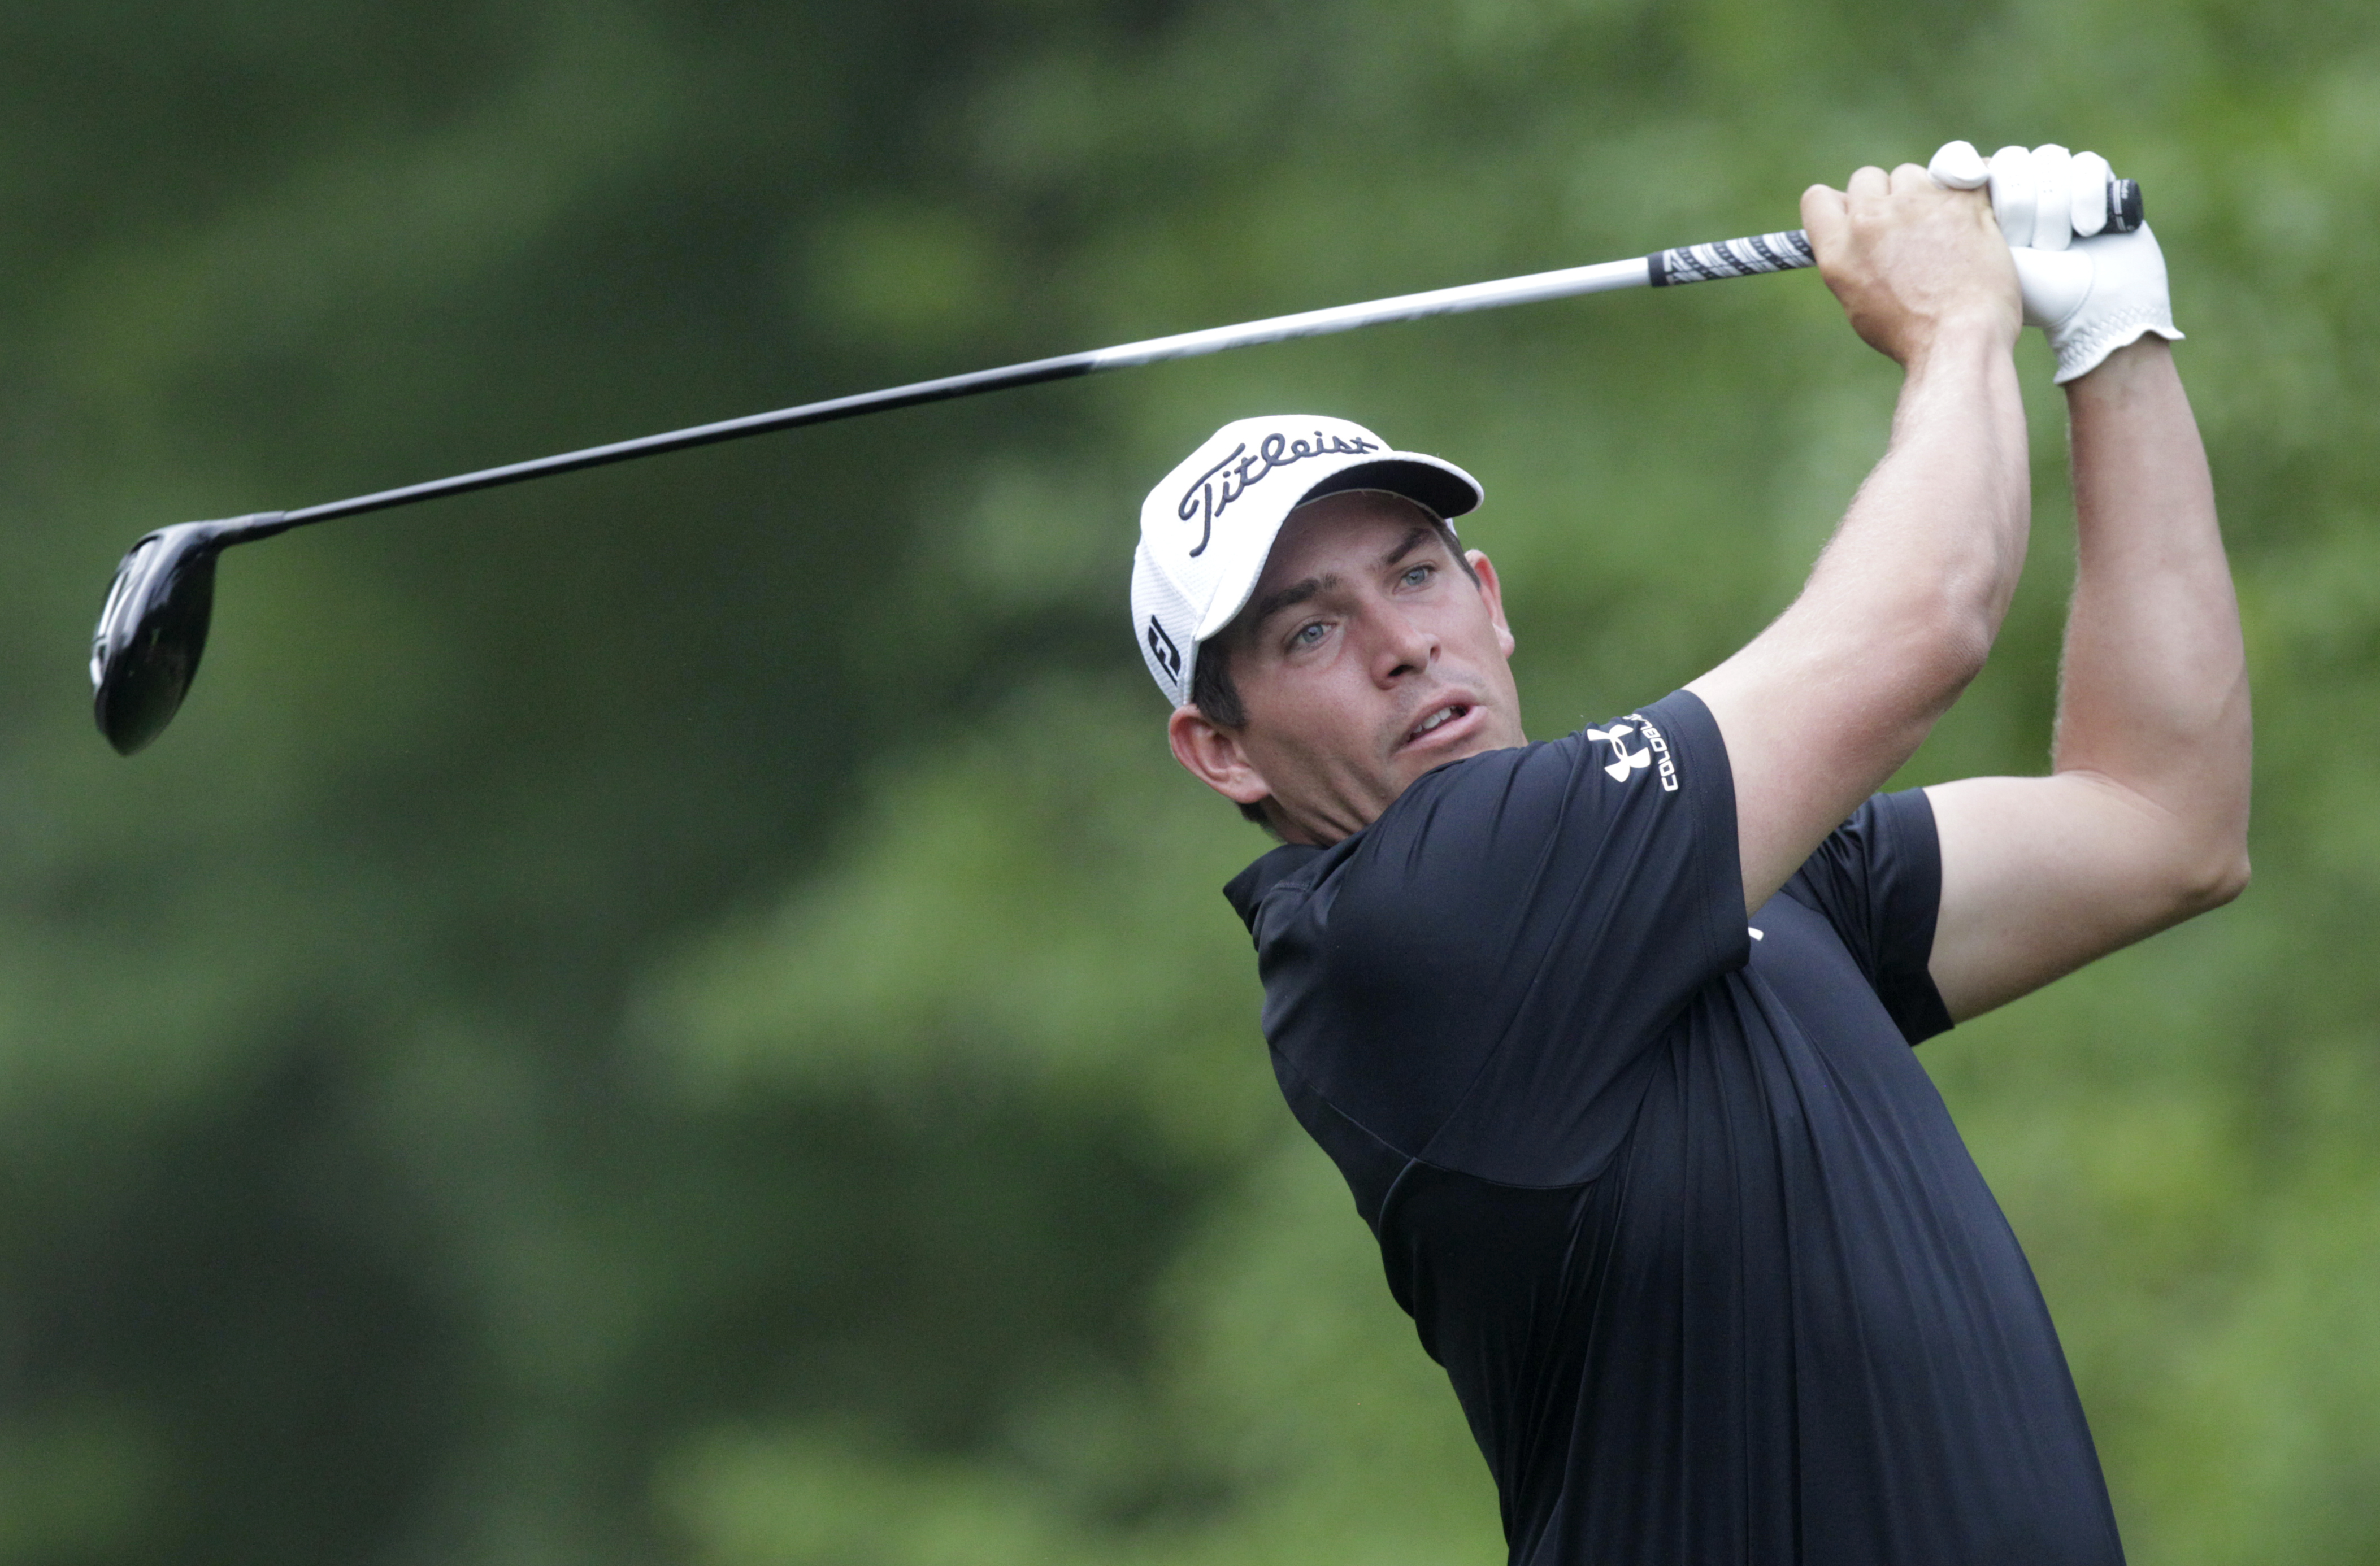 Scott Stallings watches his tee shot on the second hole at the Houston Open golf tournament in Humble, Texas, Thursday, April 2, 2015. (AP Photo/Patric Schneider)